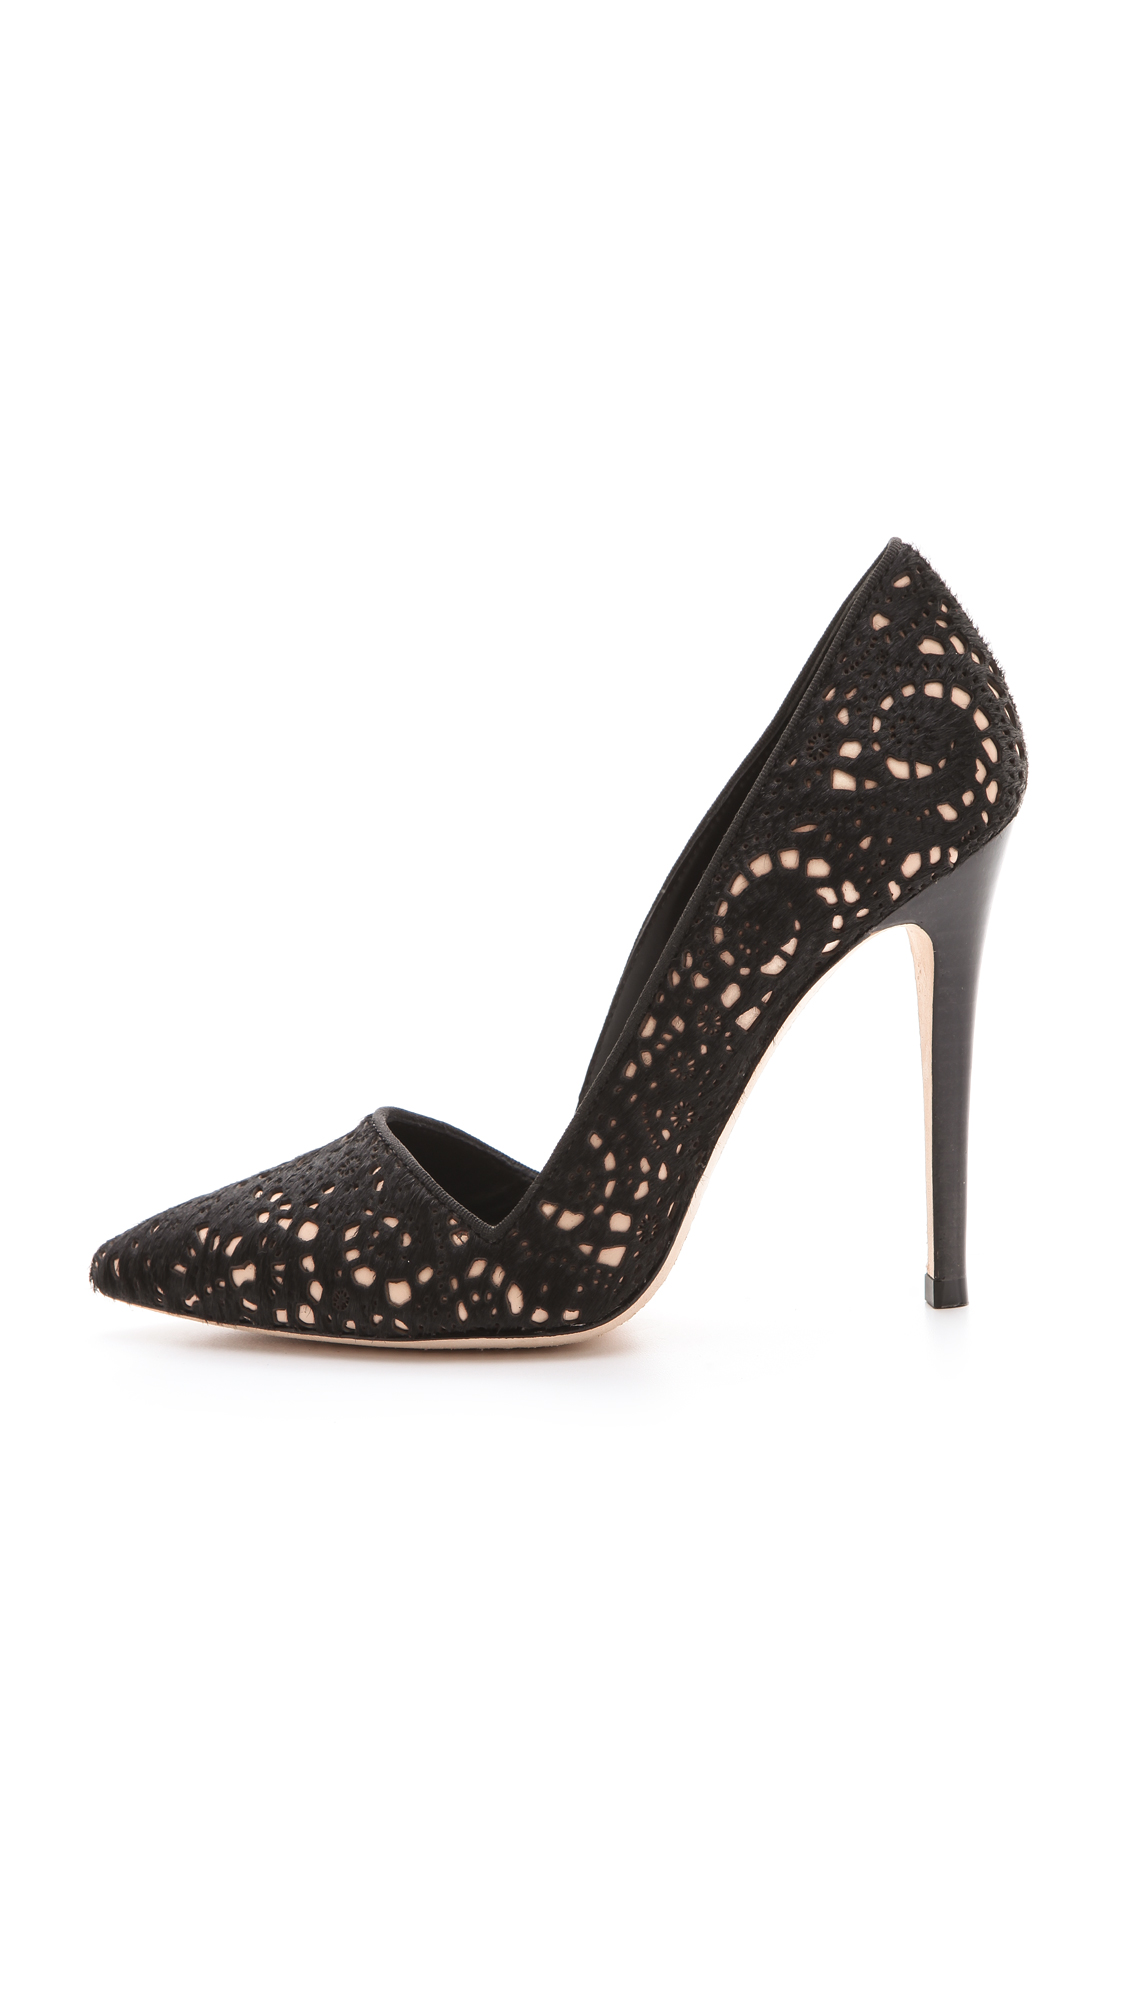 bb8d98af4ad2 Lyst - Alice + Olivia Dina Laser Cut Haircalf Pumps in Black